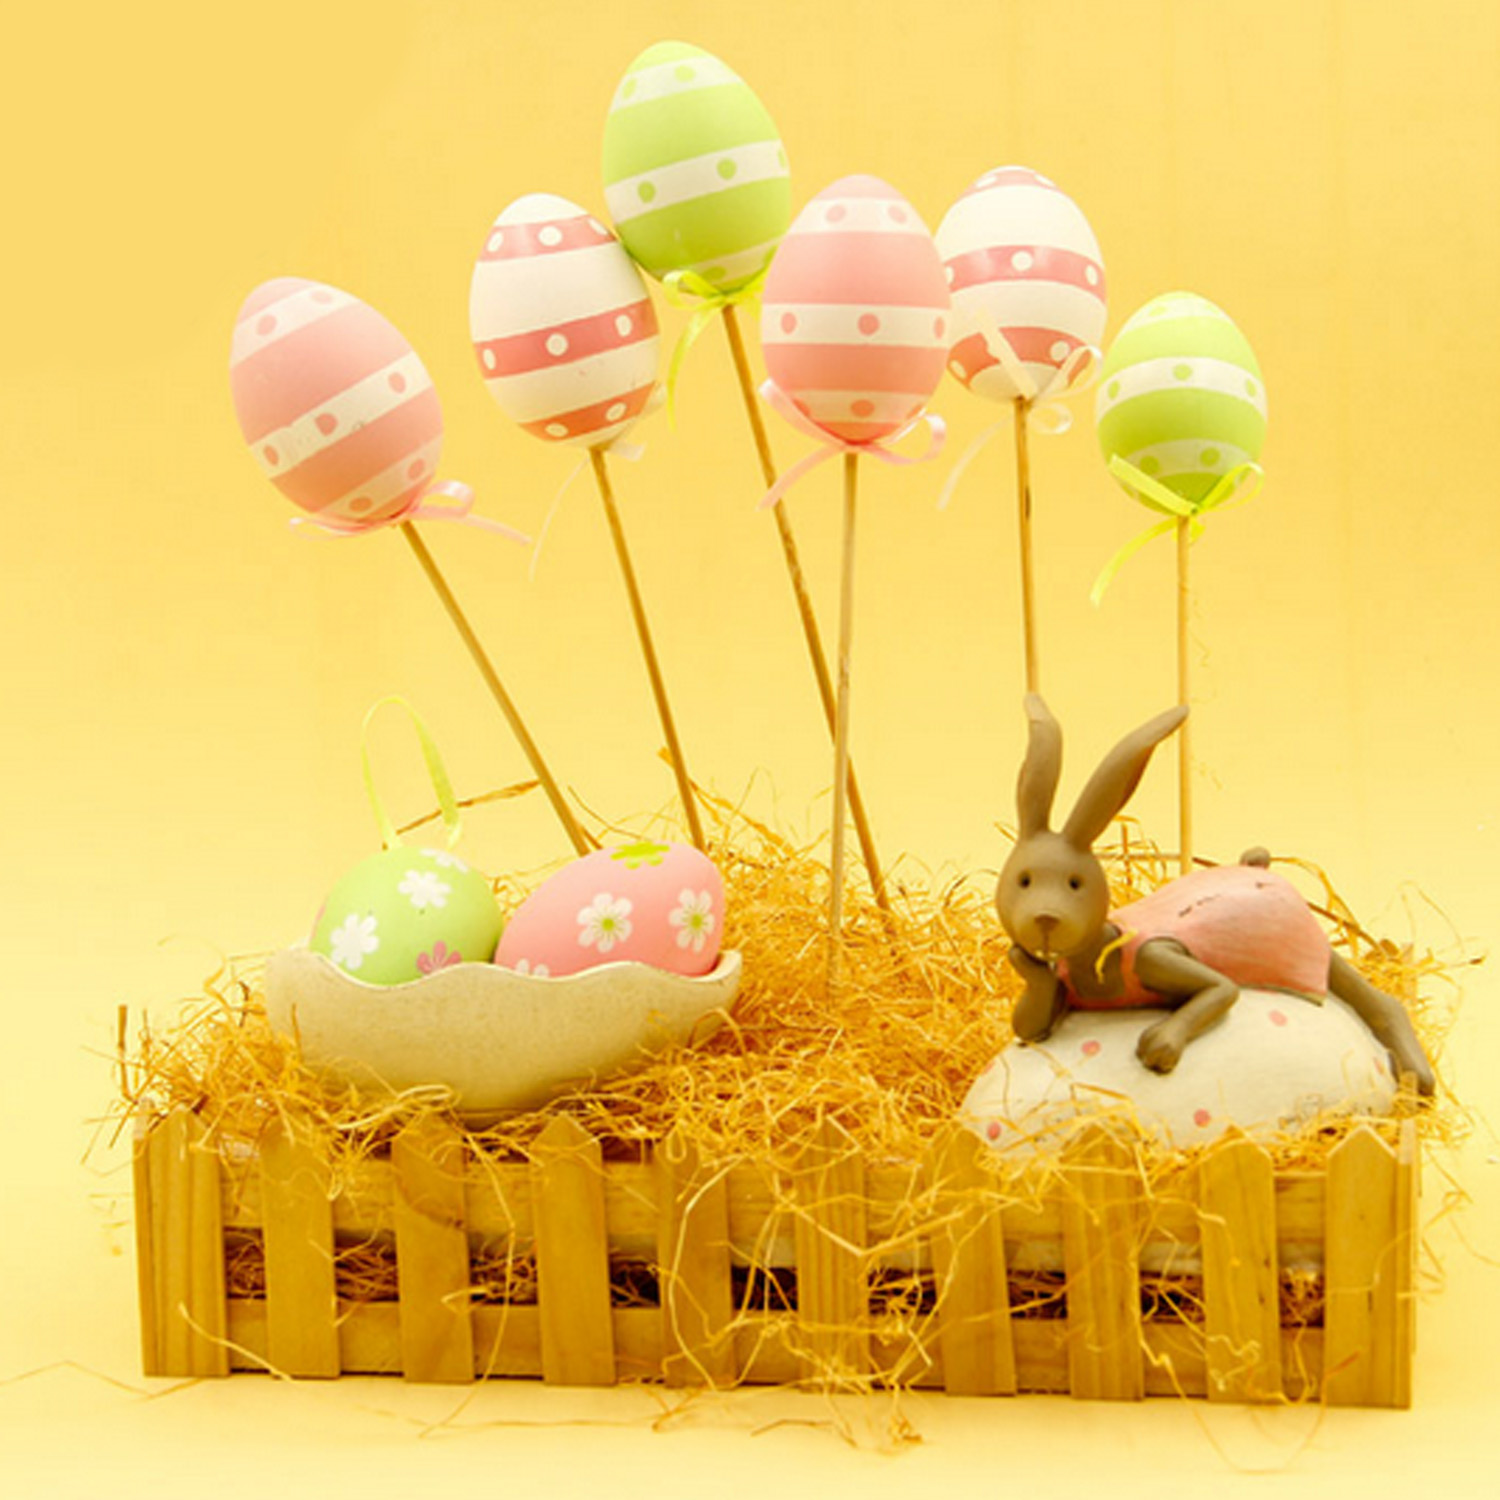 9pcs Colorful Plastic Easter Eggs Picks Simulation Egg with Stick Crafts Ornaments Gadge ...